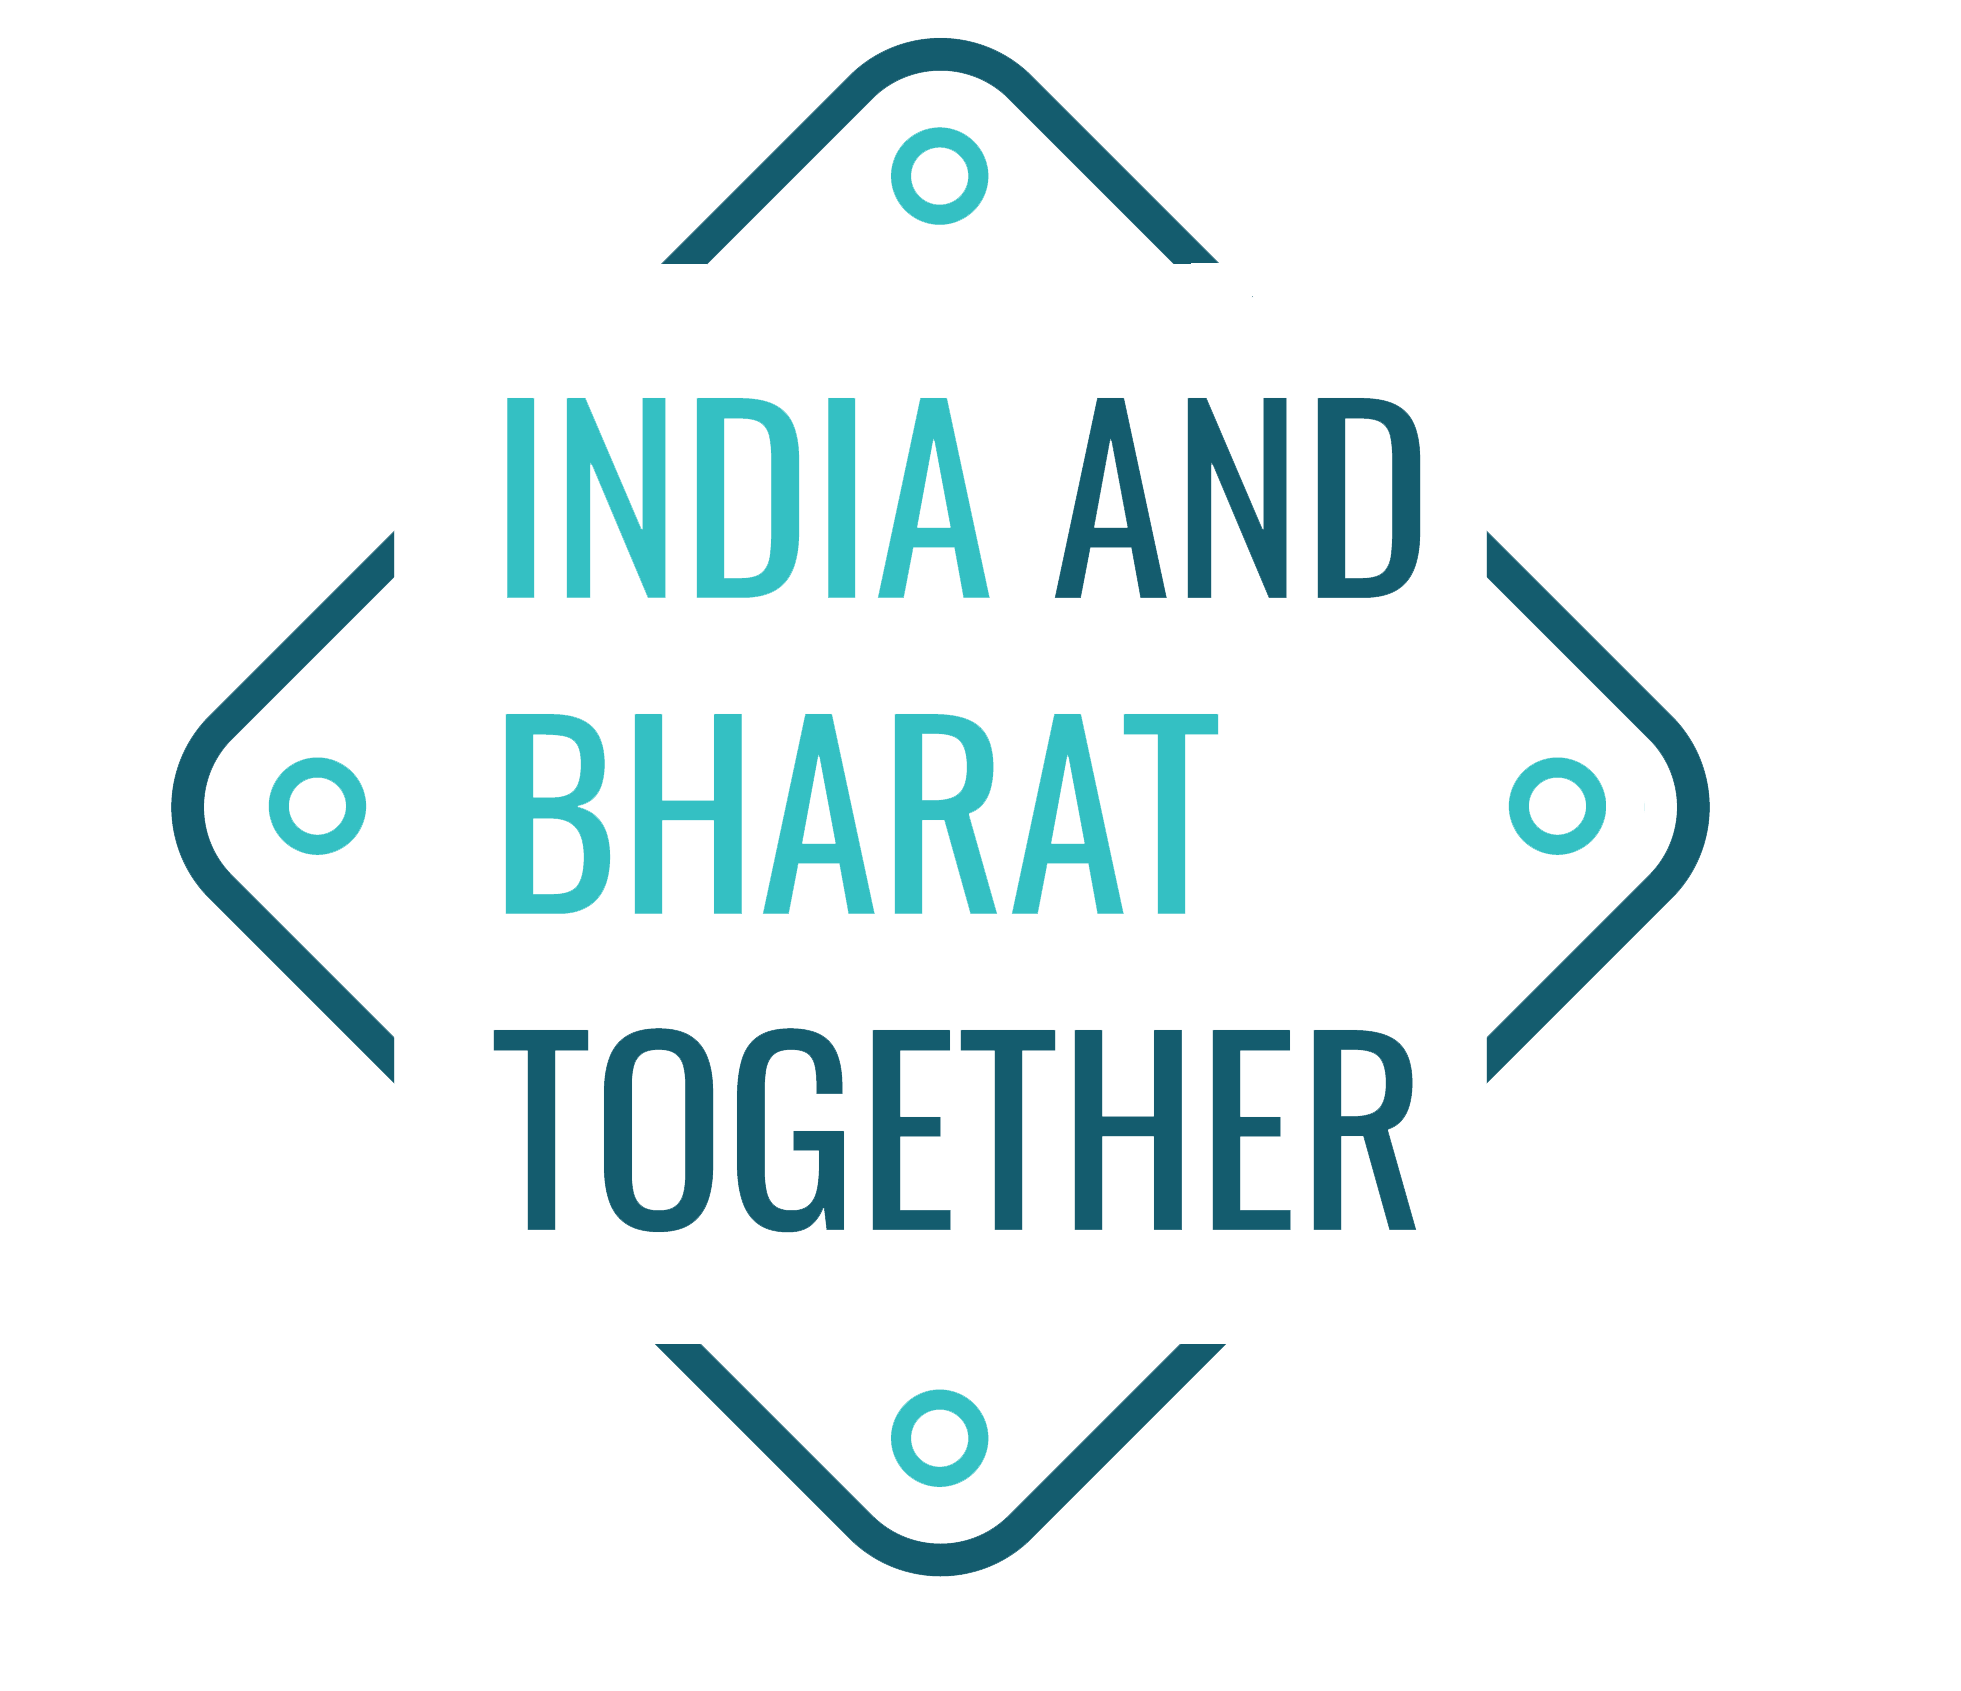 INDIA AND BHARAT TOGETHER